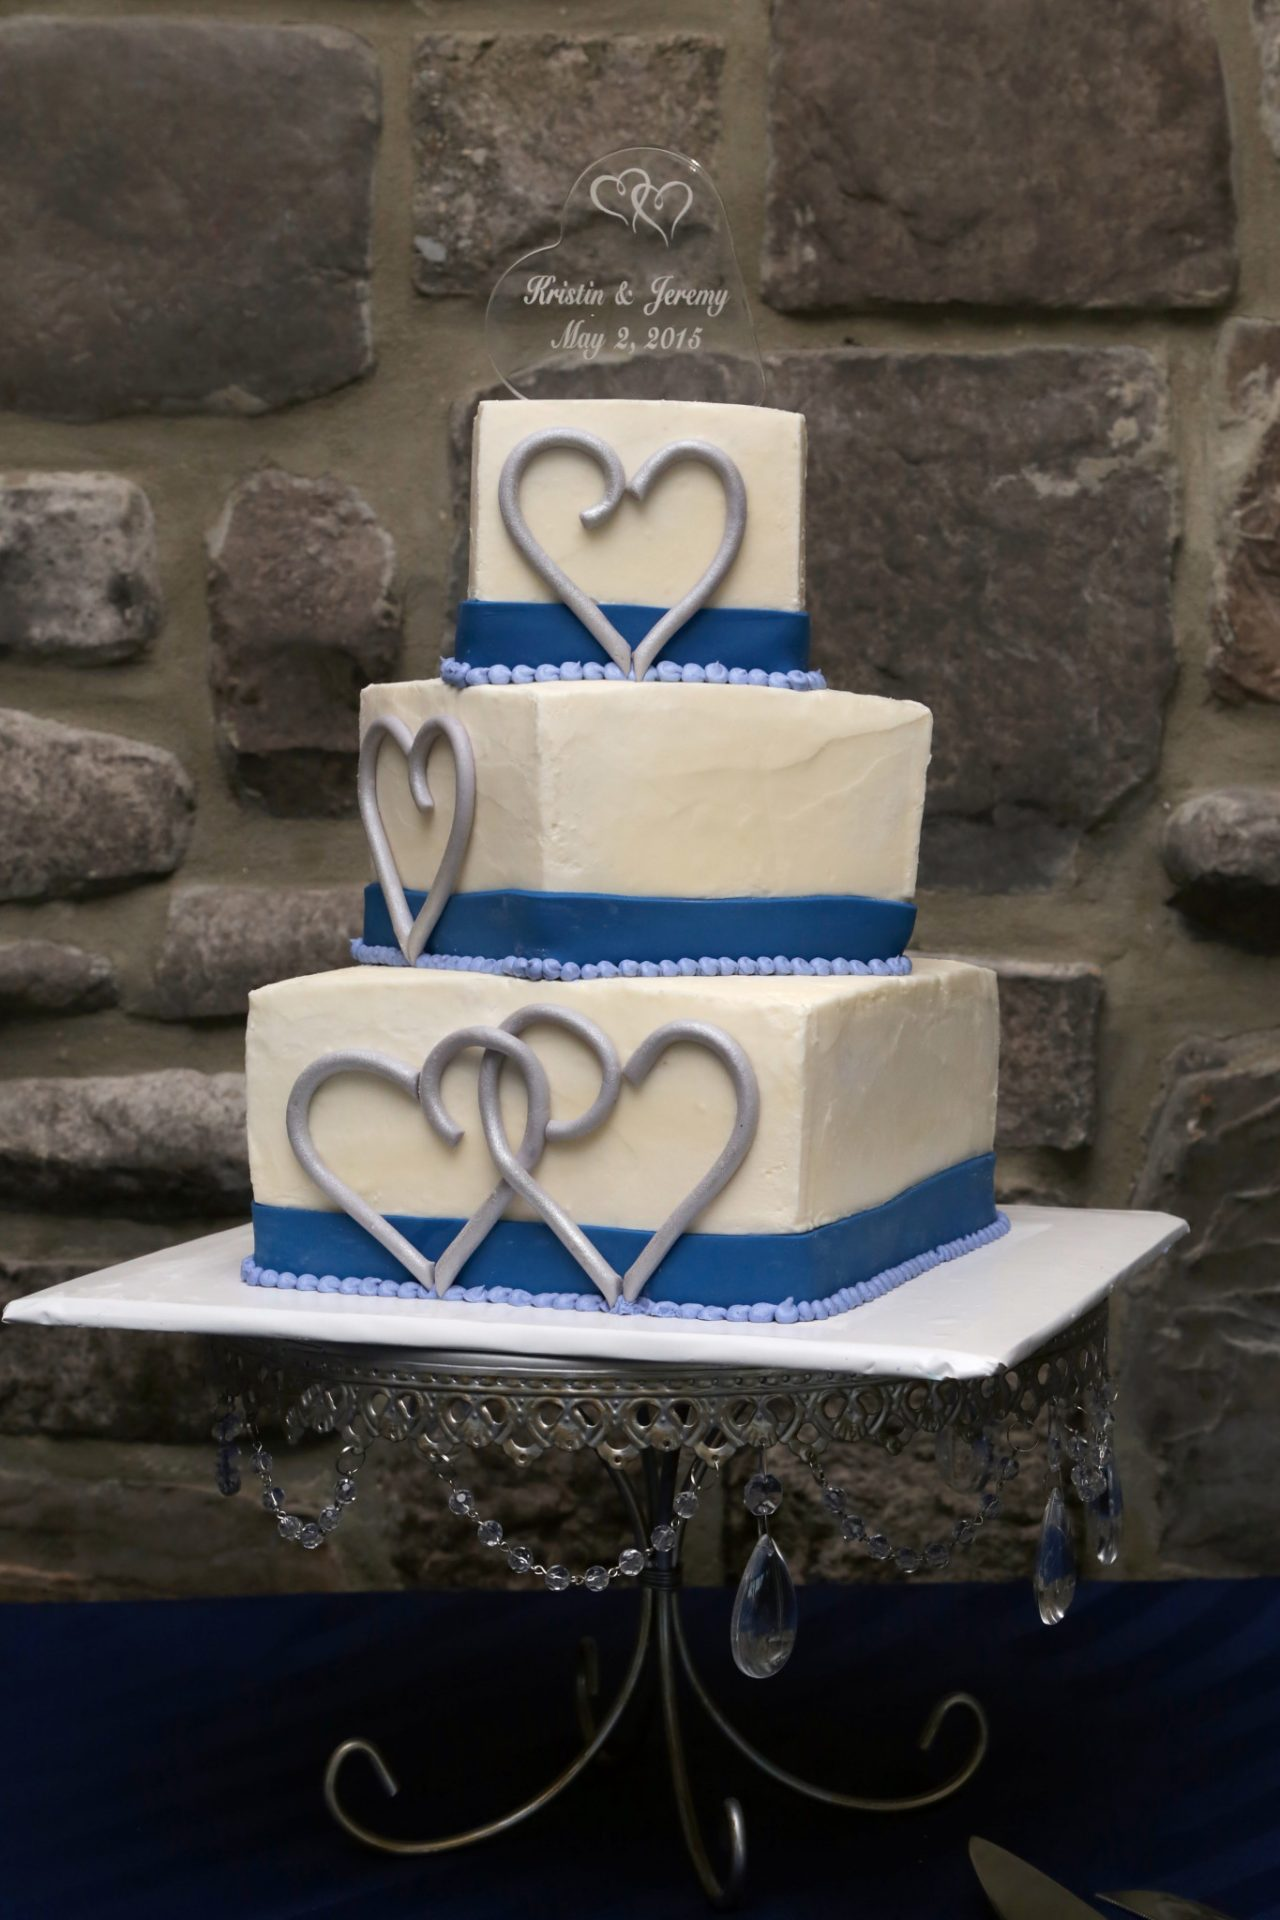 Jeremy and Kristin's cream and blue wedding cake with silver hearts drawn in icing on the sides of three tiered cake